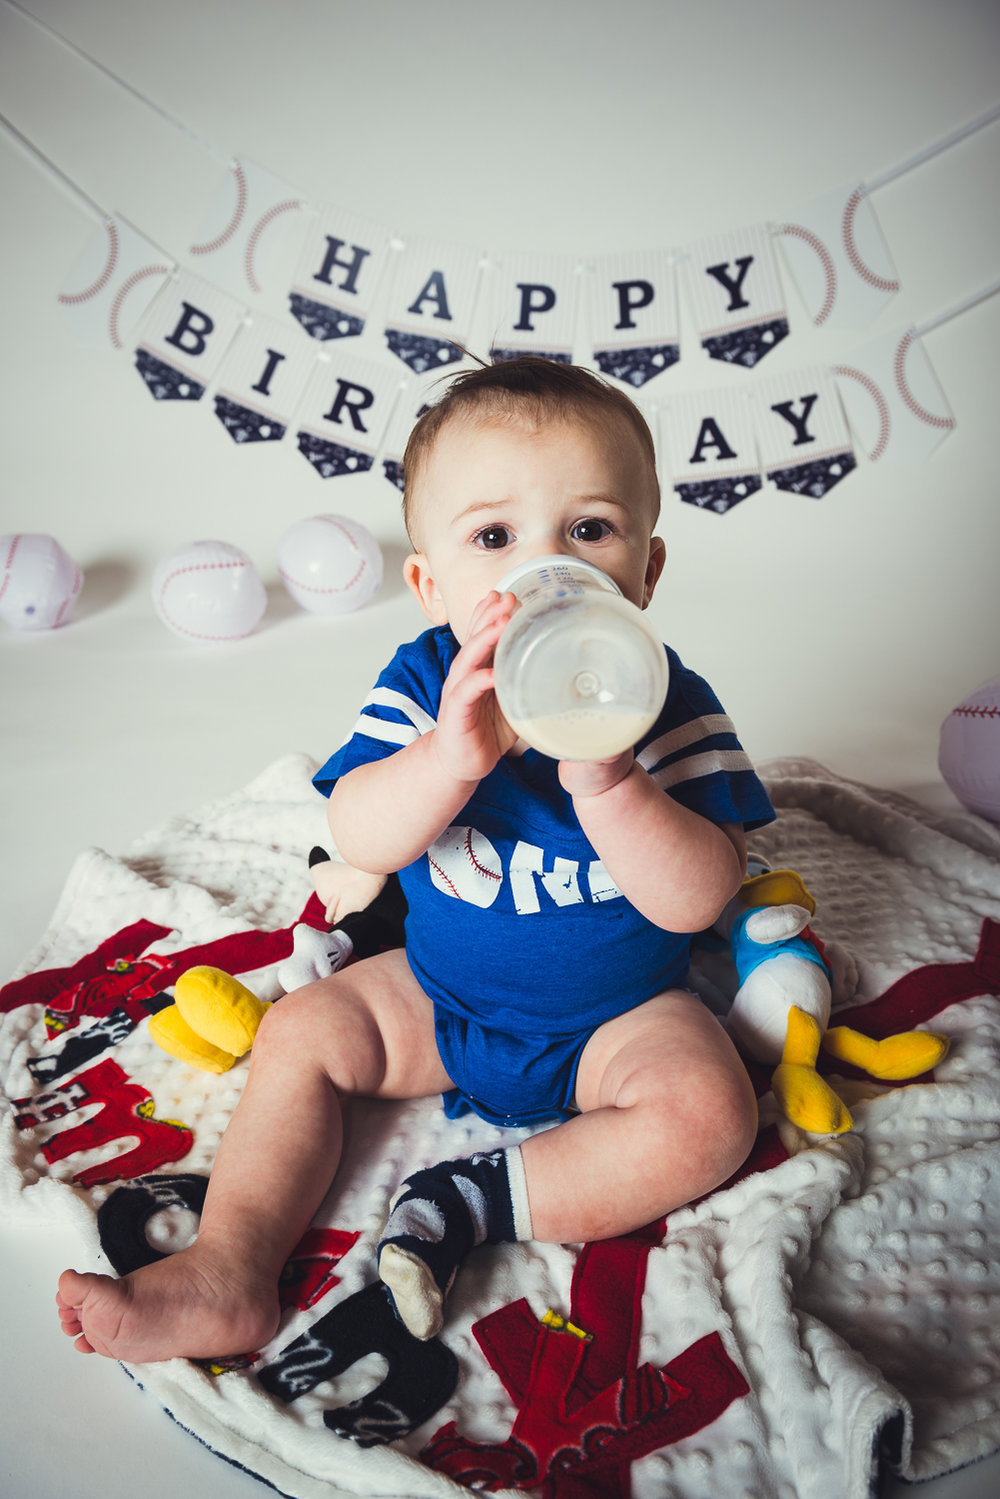 20171217 - Timmys First Bday Portraits LR-13.jpg